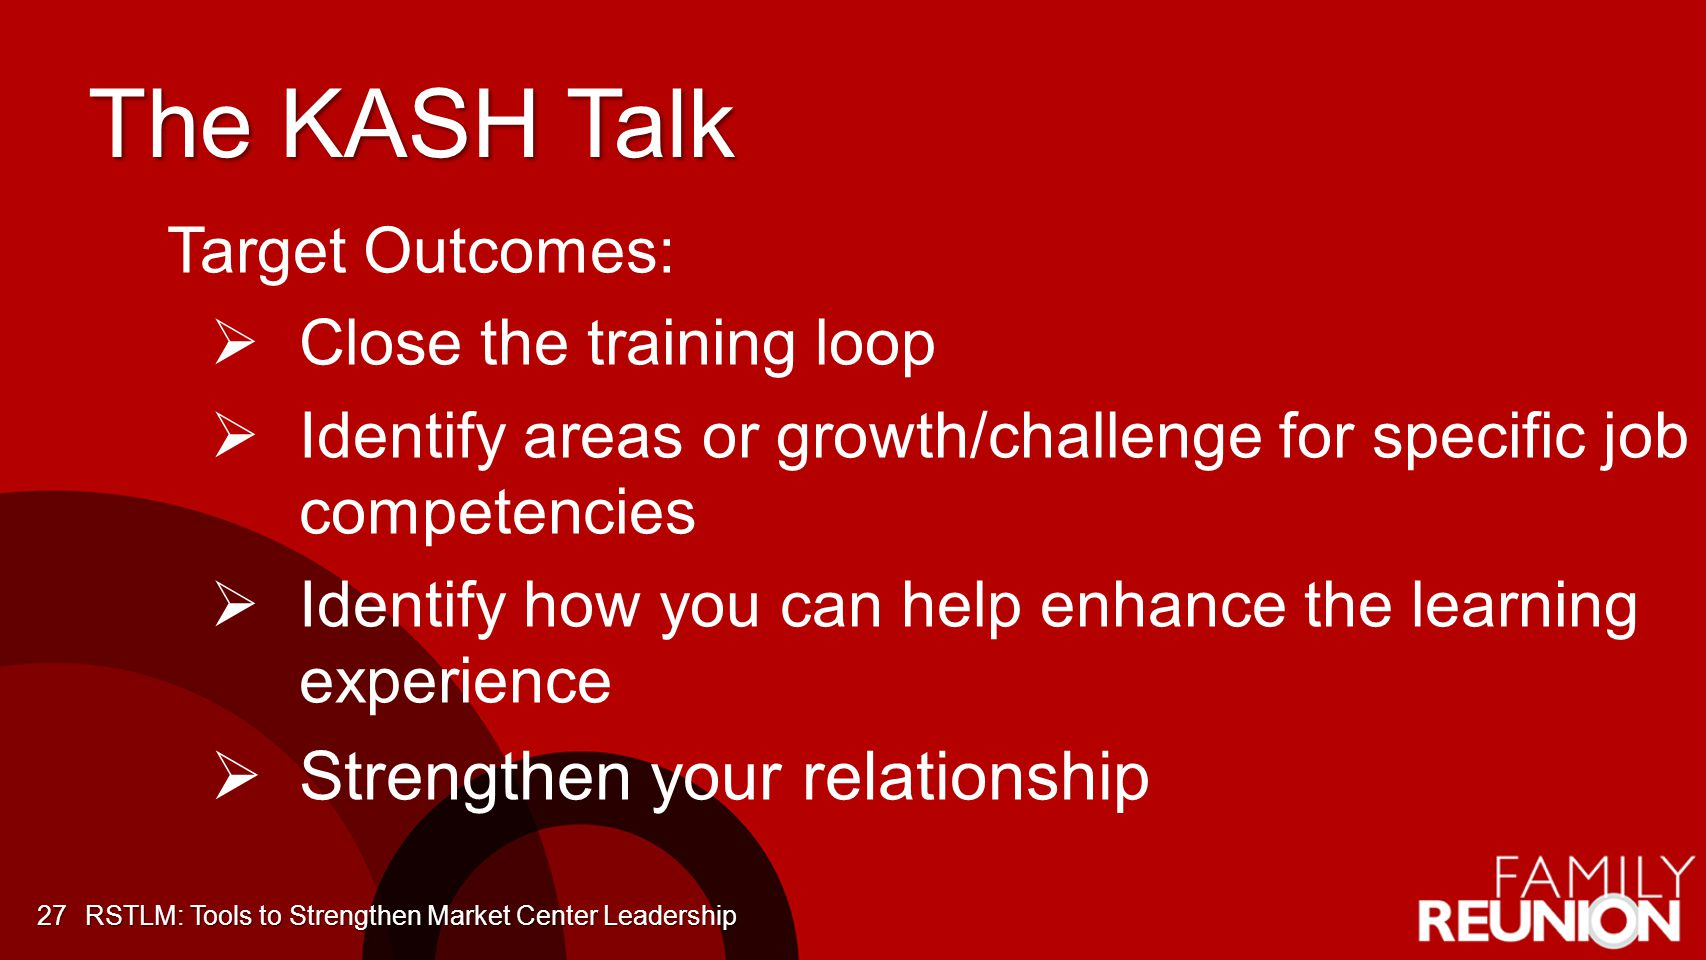 The KASH Talk 27 Target Outcomes: Close the training loop Identify areas or growth/challenge for specific job competencies Identify how you can help enhance the learning experience Strengthen your relationship RSTLM: Tools to Strengthen Market Center Leadership